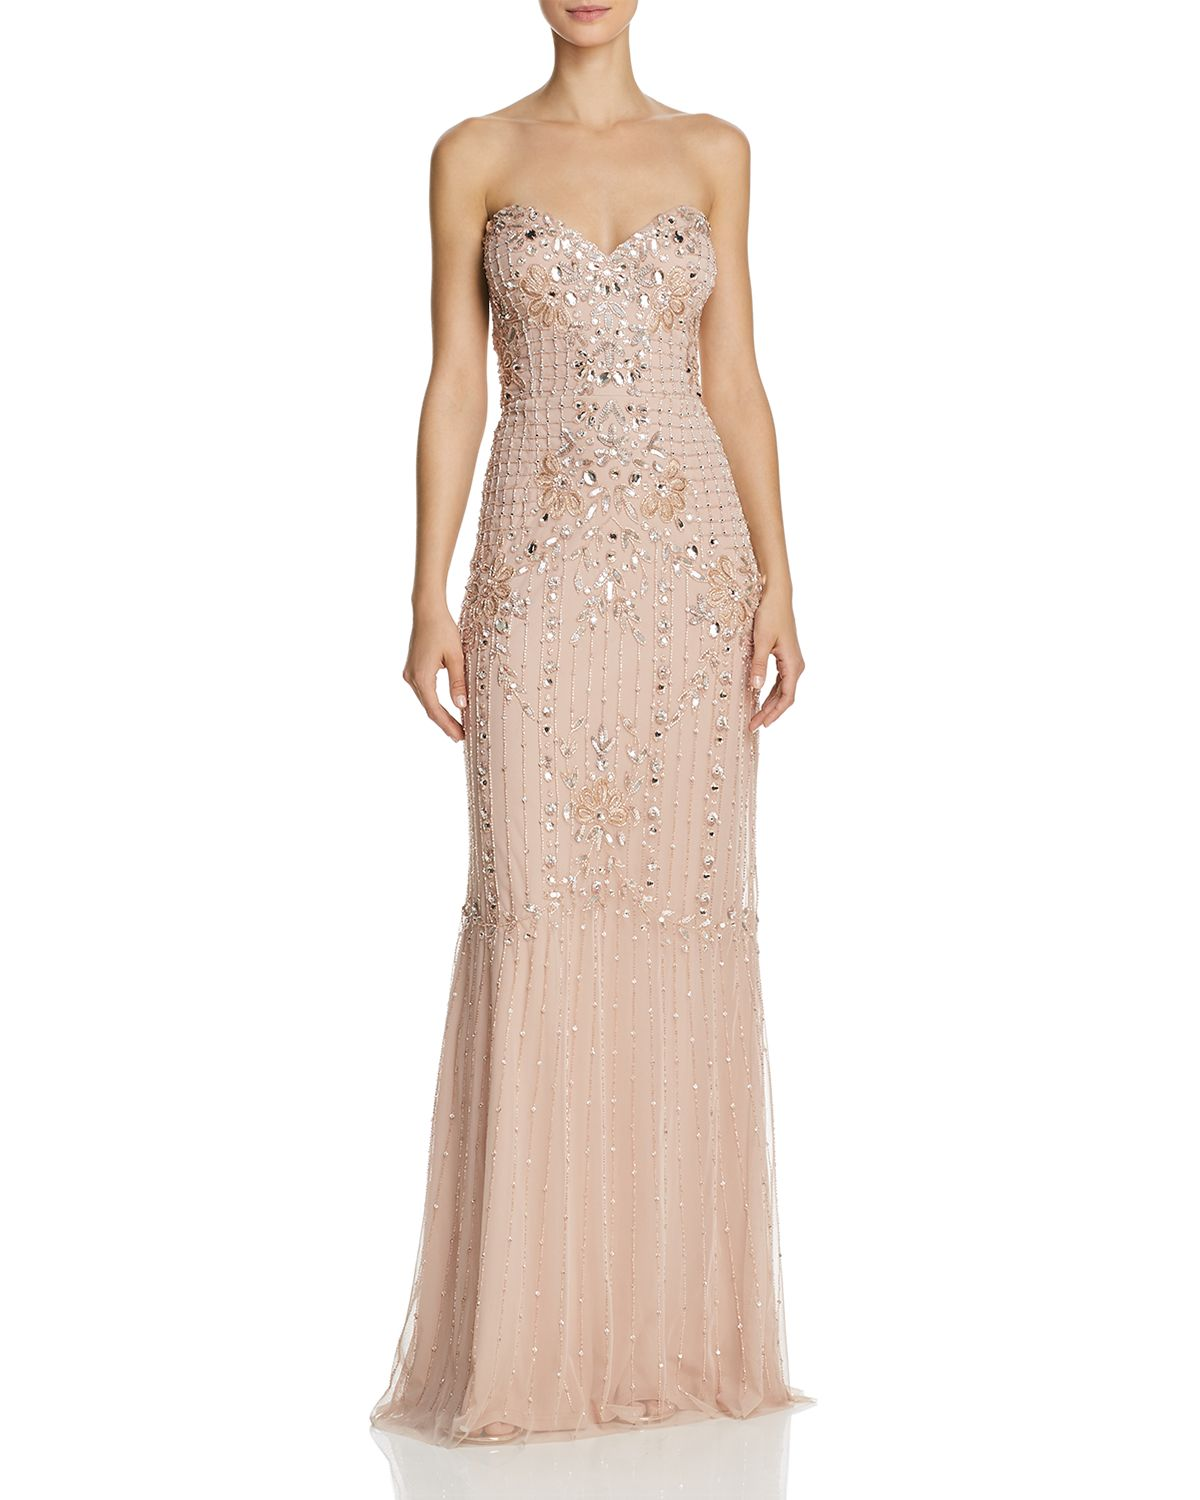 Strapless Jeweled Gown by Aidan Mattox